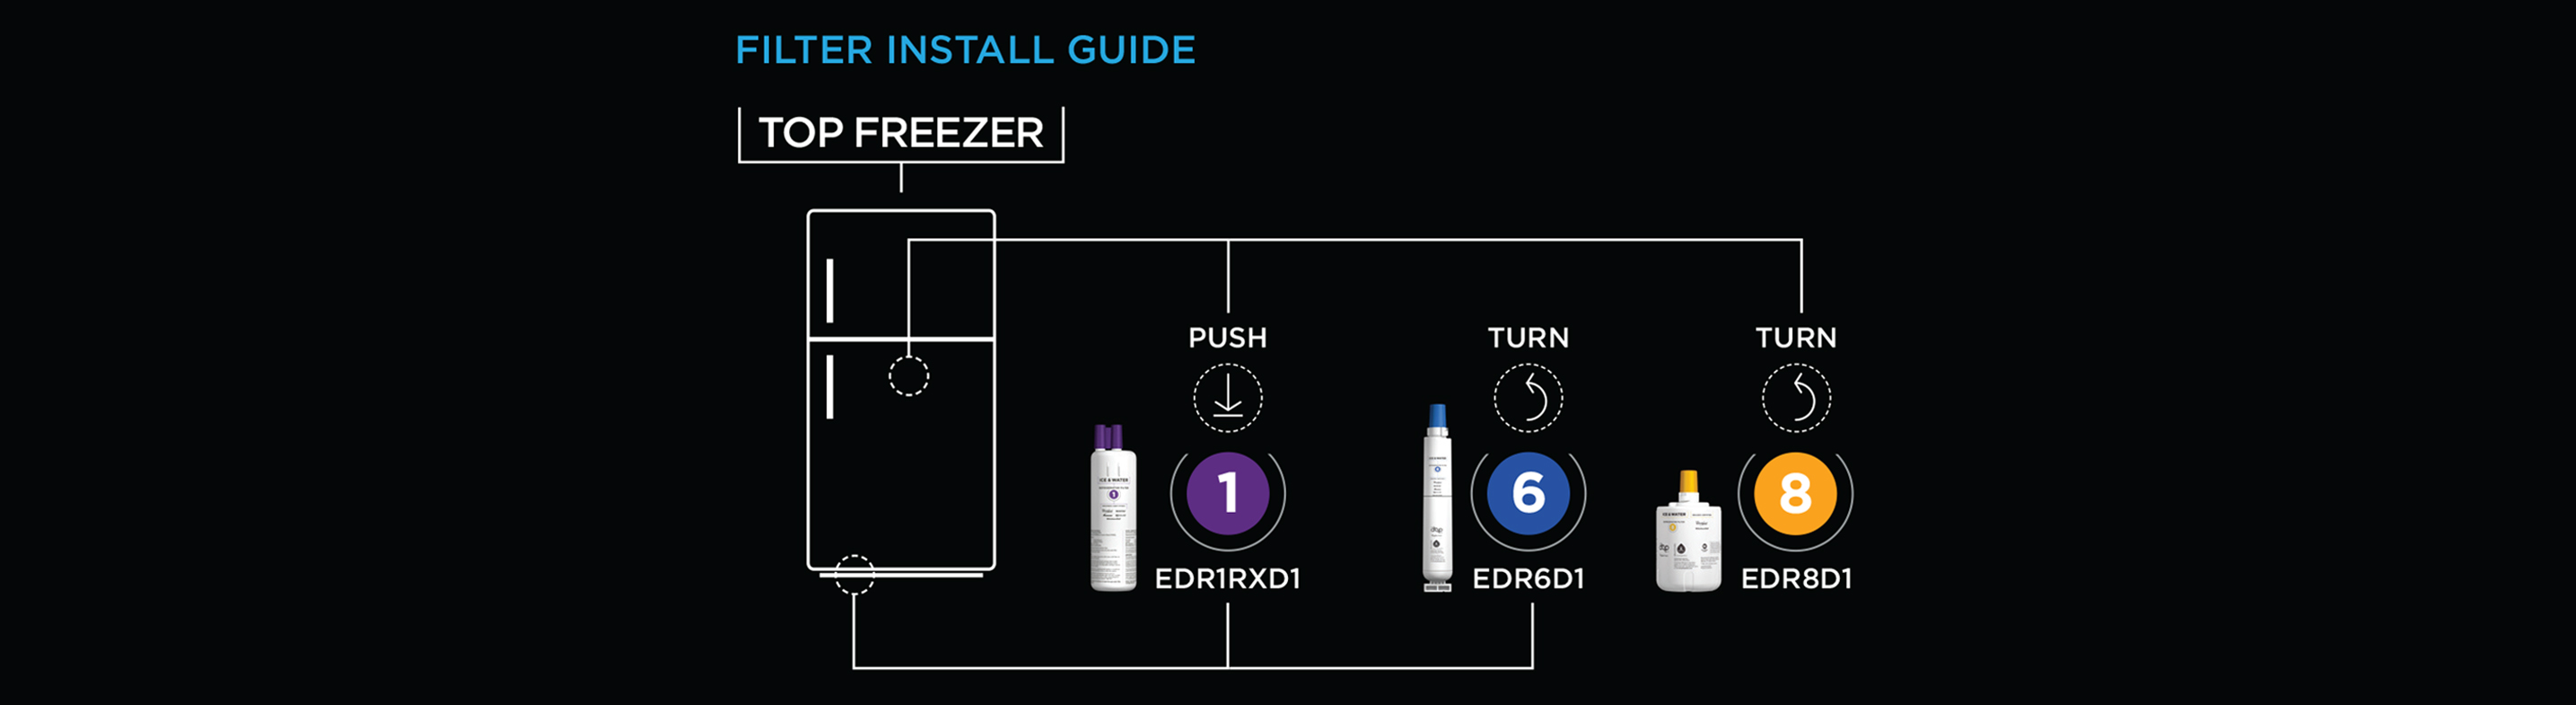 EveryDrop Top Freezer Water Filter Replacement Guide